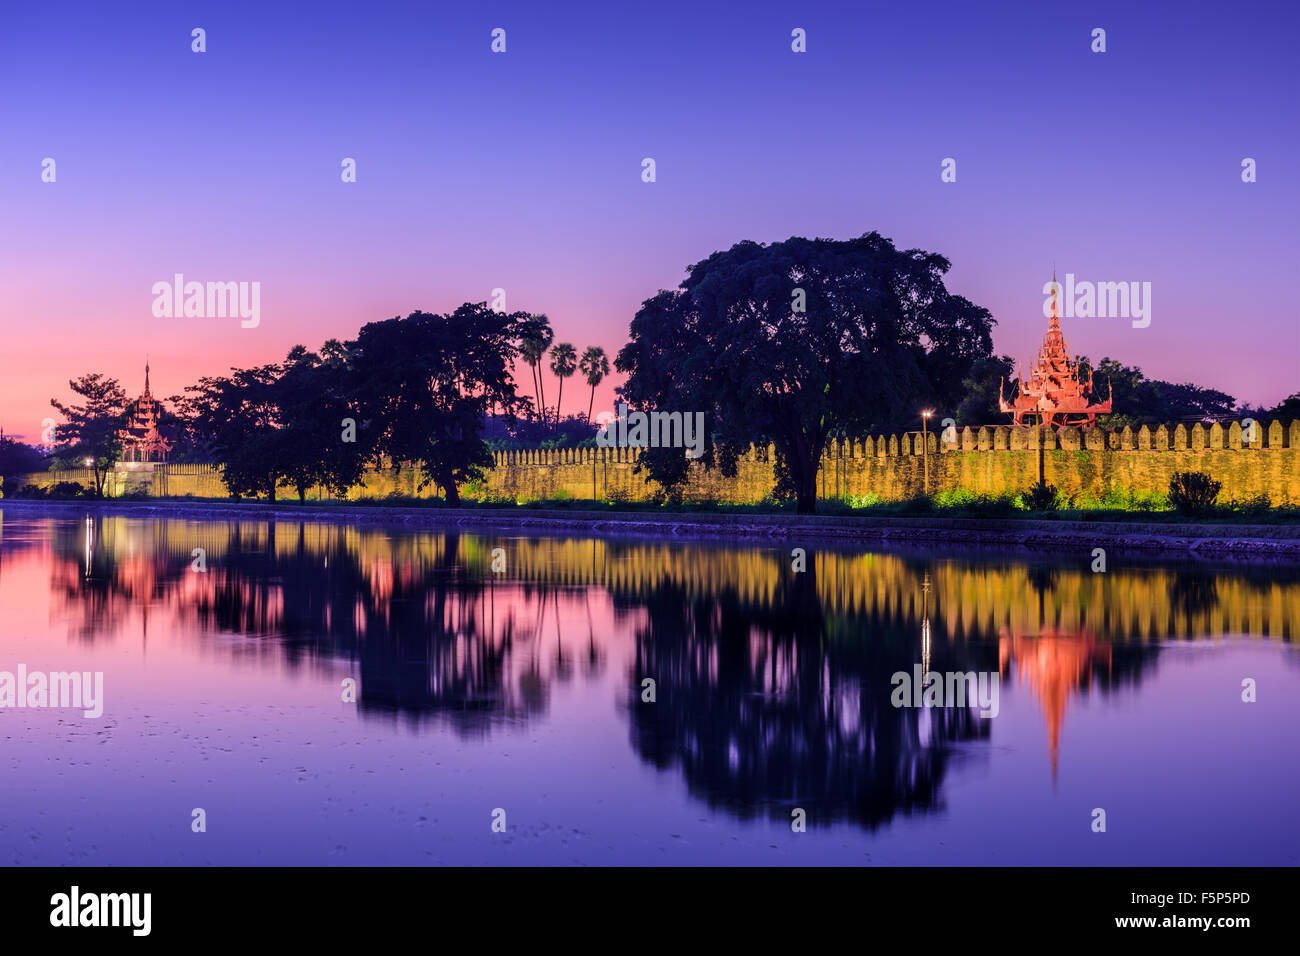 Mandalay, Myanmar at the royal palace moat. - Stock Image